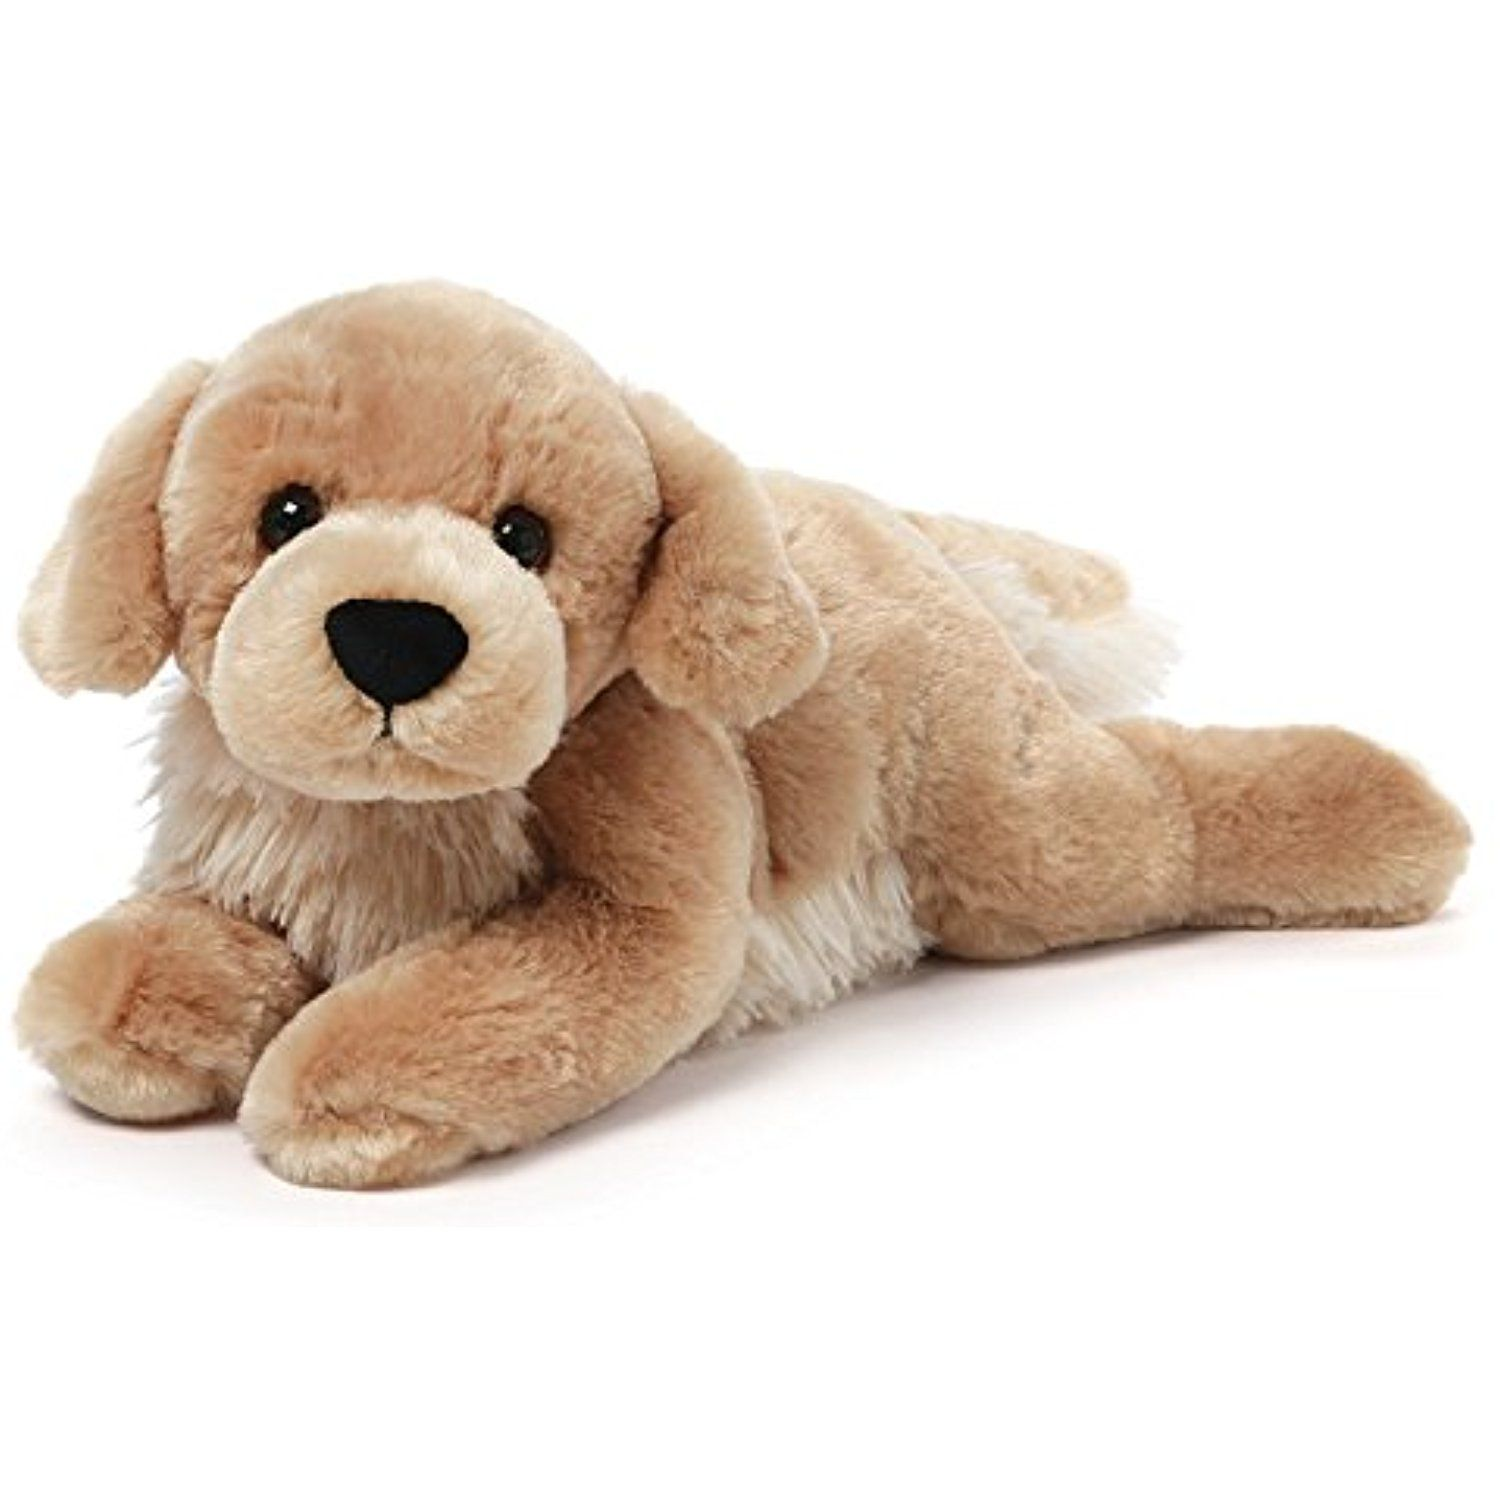 Gund Gryffin Golden Retriever Dog Stuffed Animal Plush